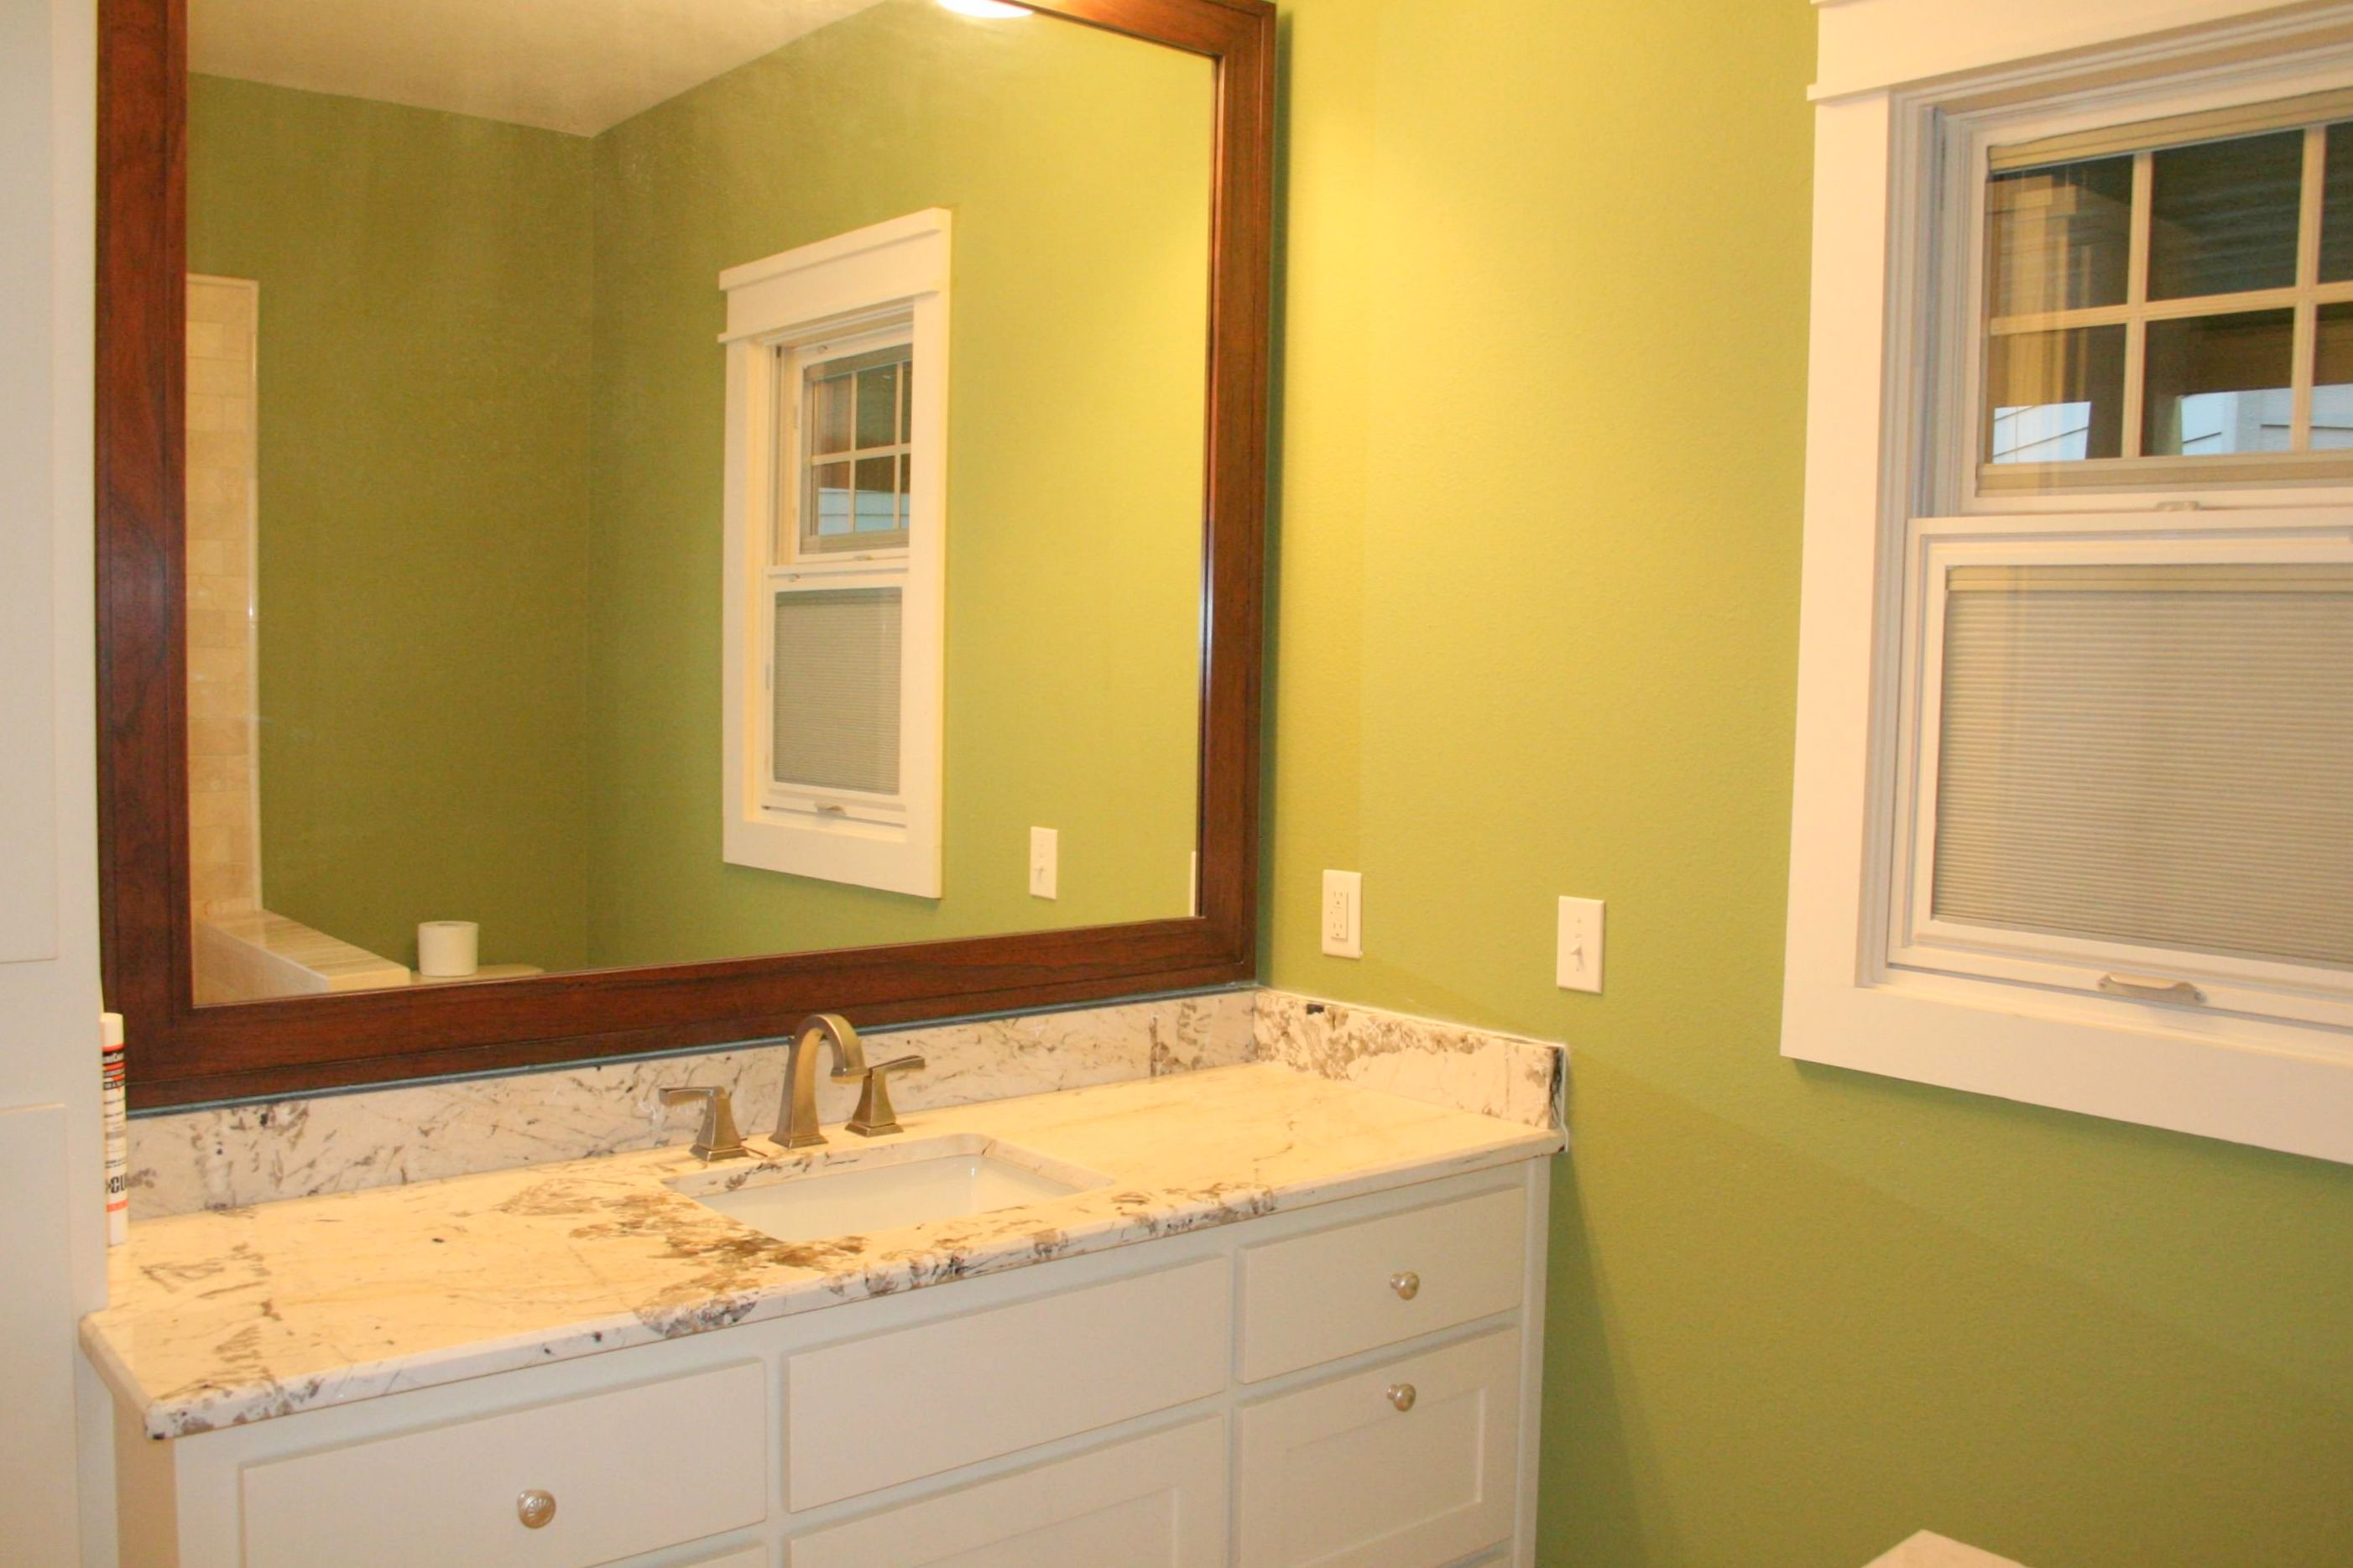 After bathroom with mirror that has been in all 5 houses